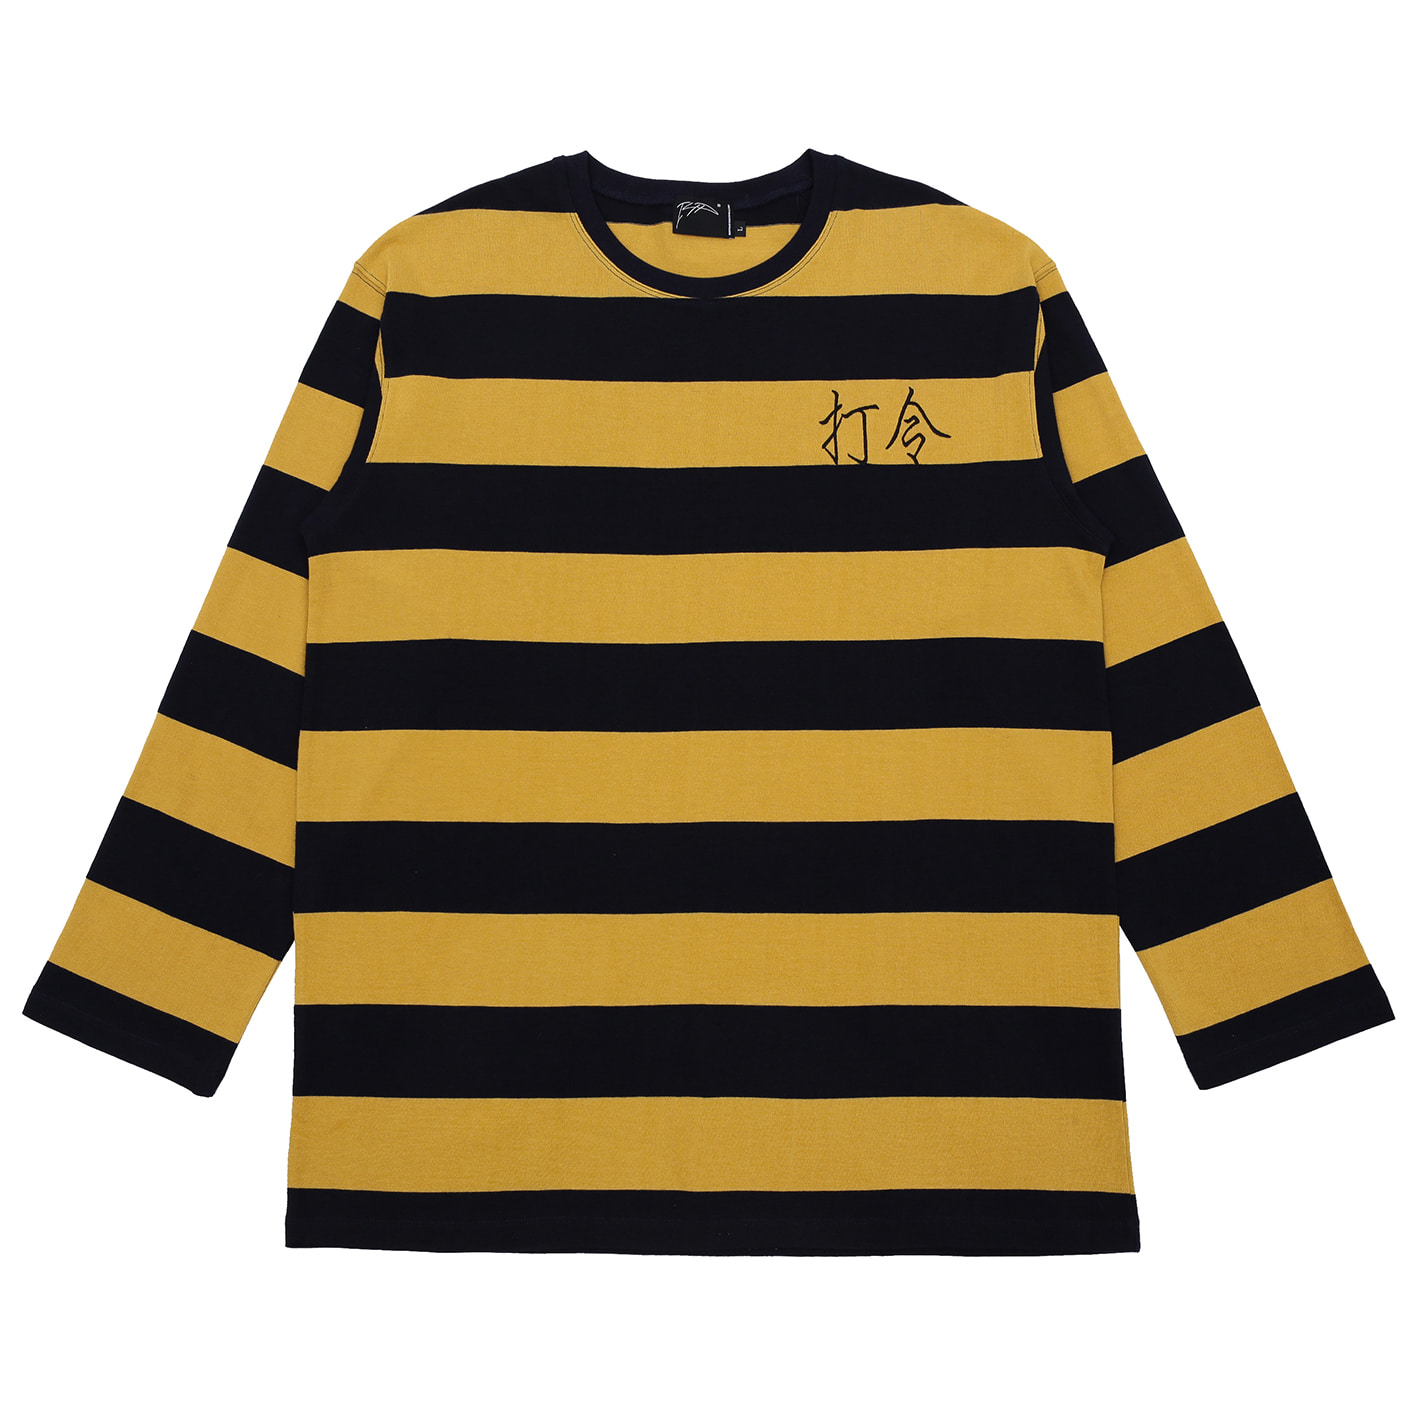 [I4P]Poong Ark Stripe T-shirt Yellow